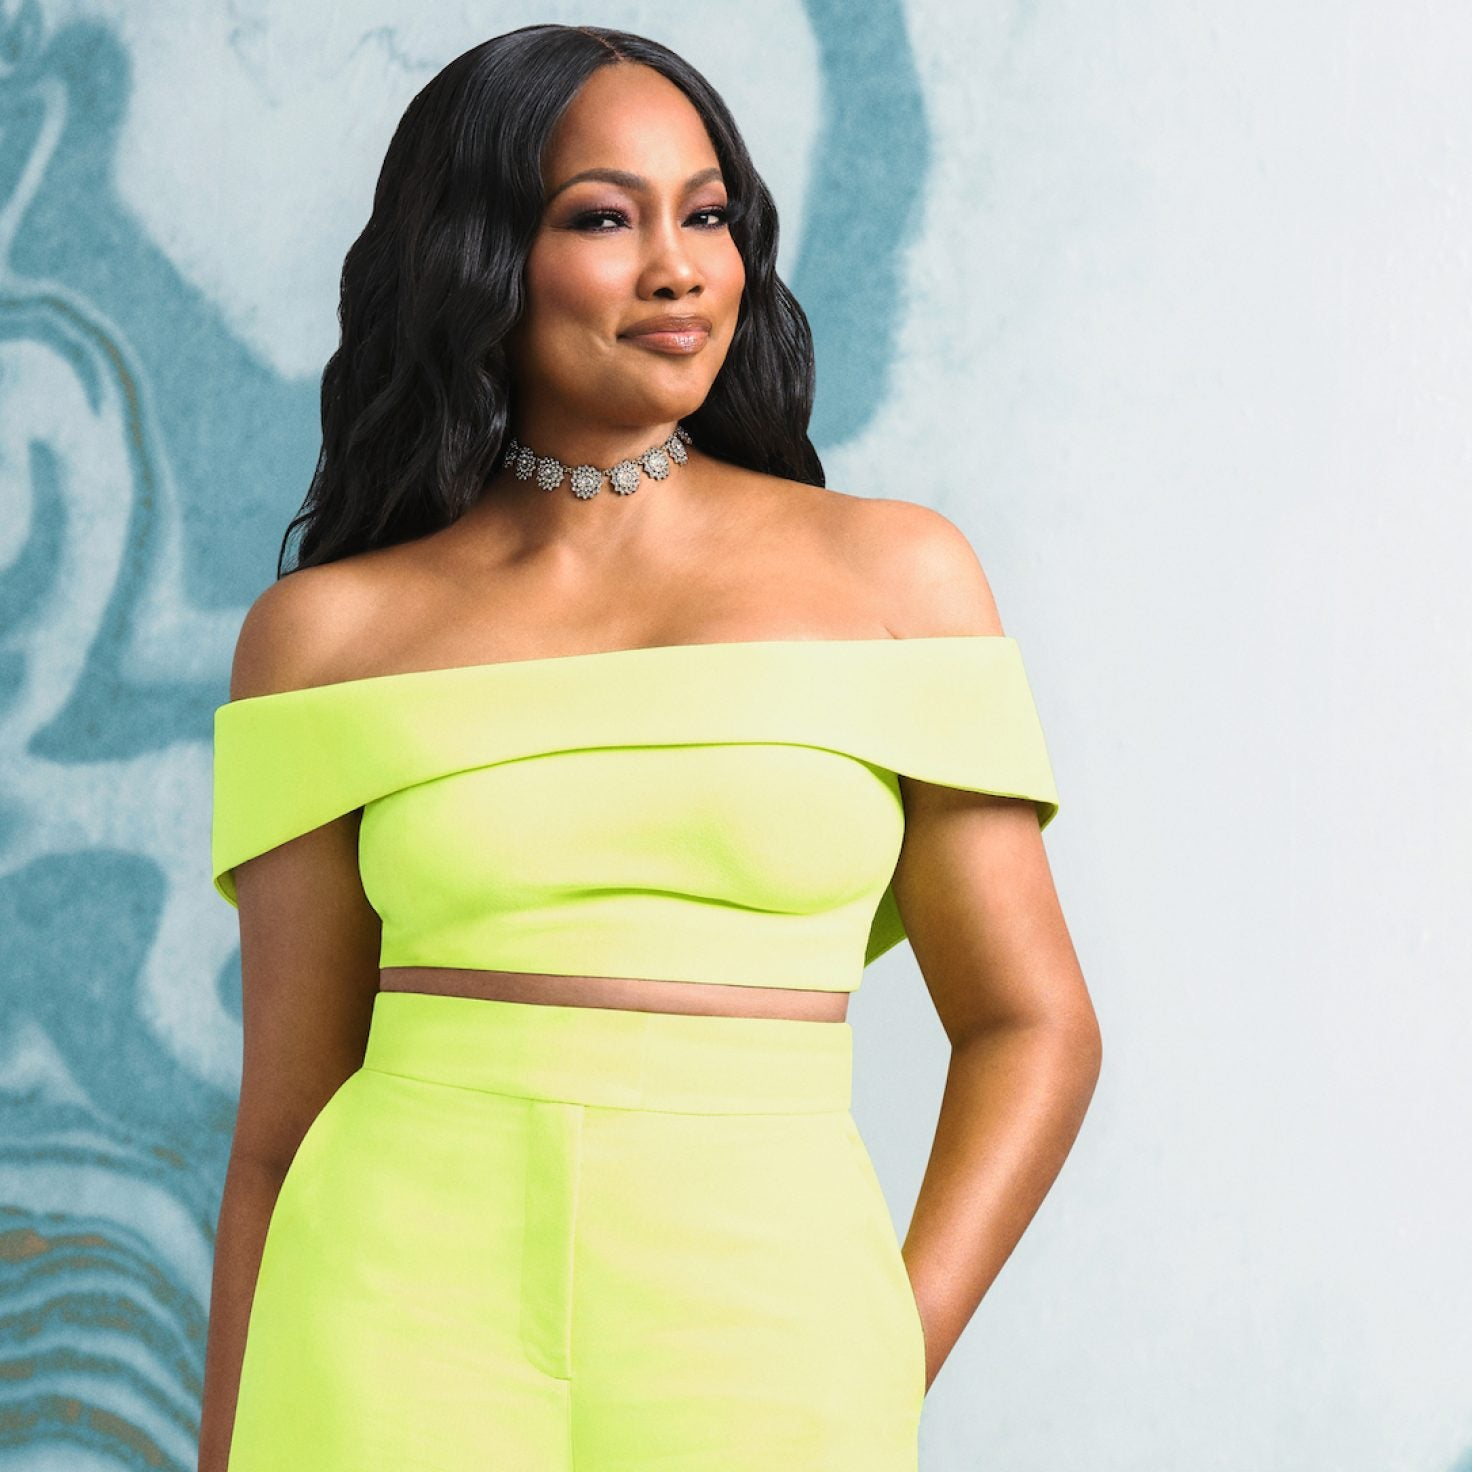 Garcelle Beauvais Is The Newest Cohost Of 'The Real'